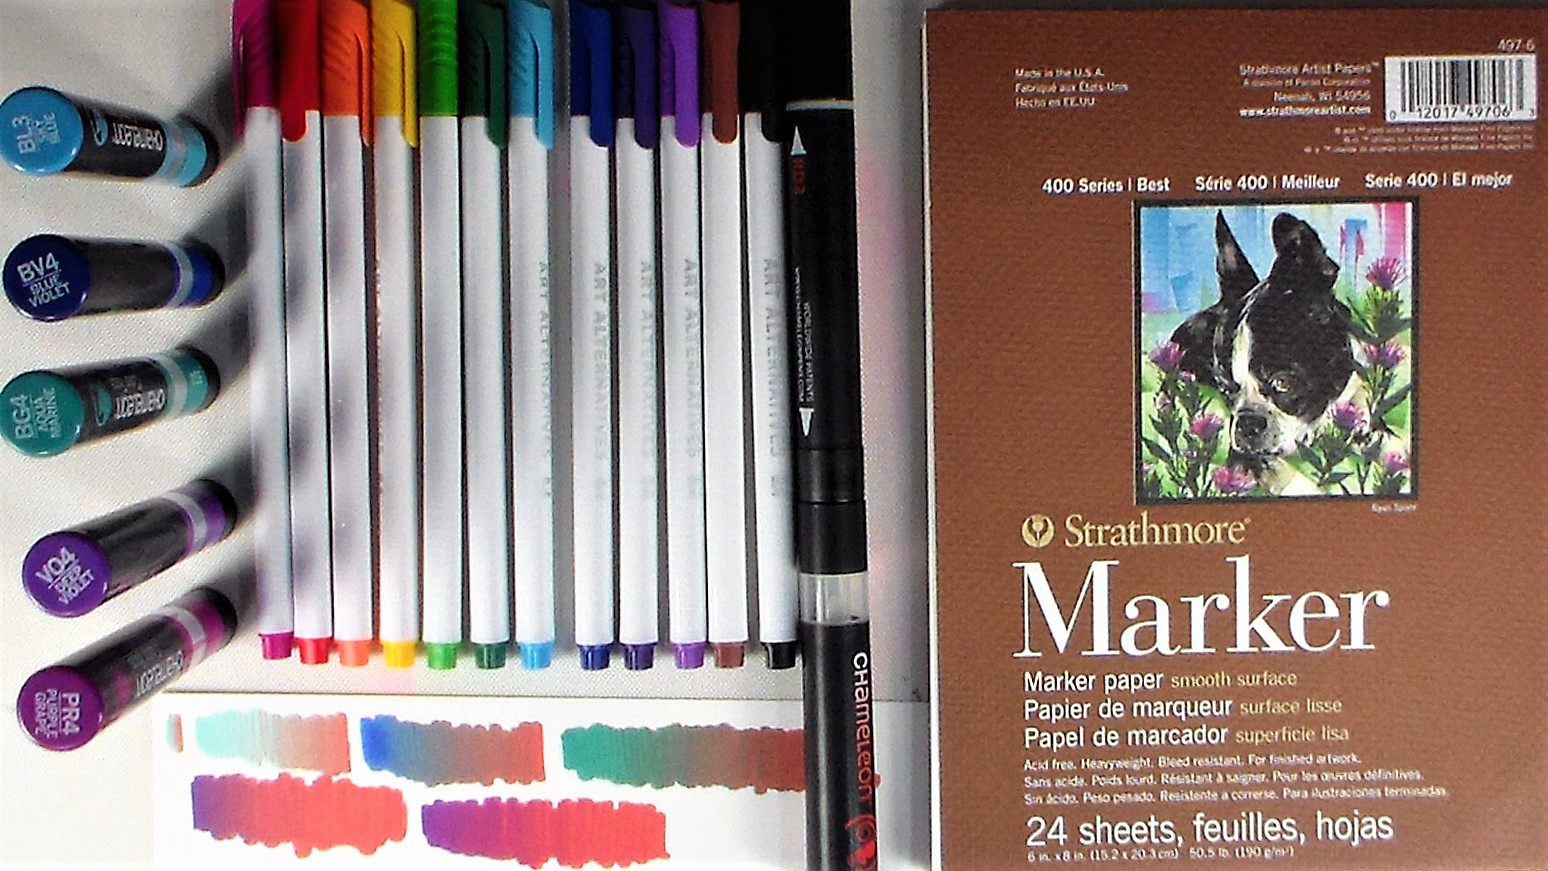 Smart Art February Box Marker Play!